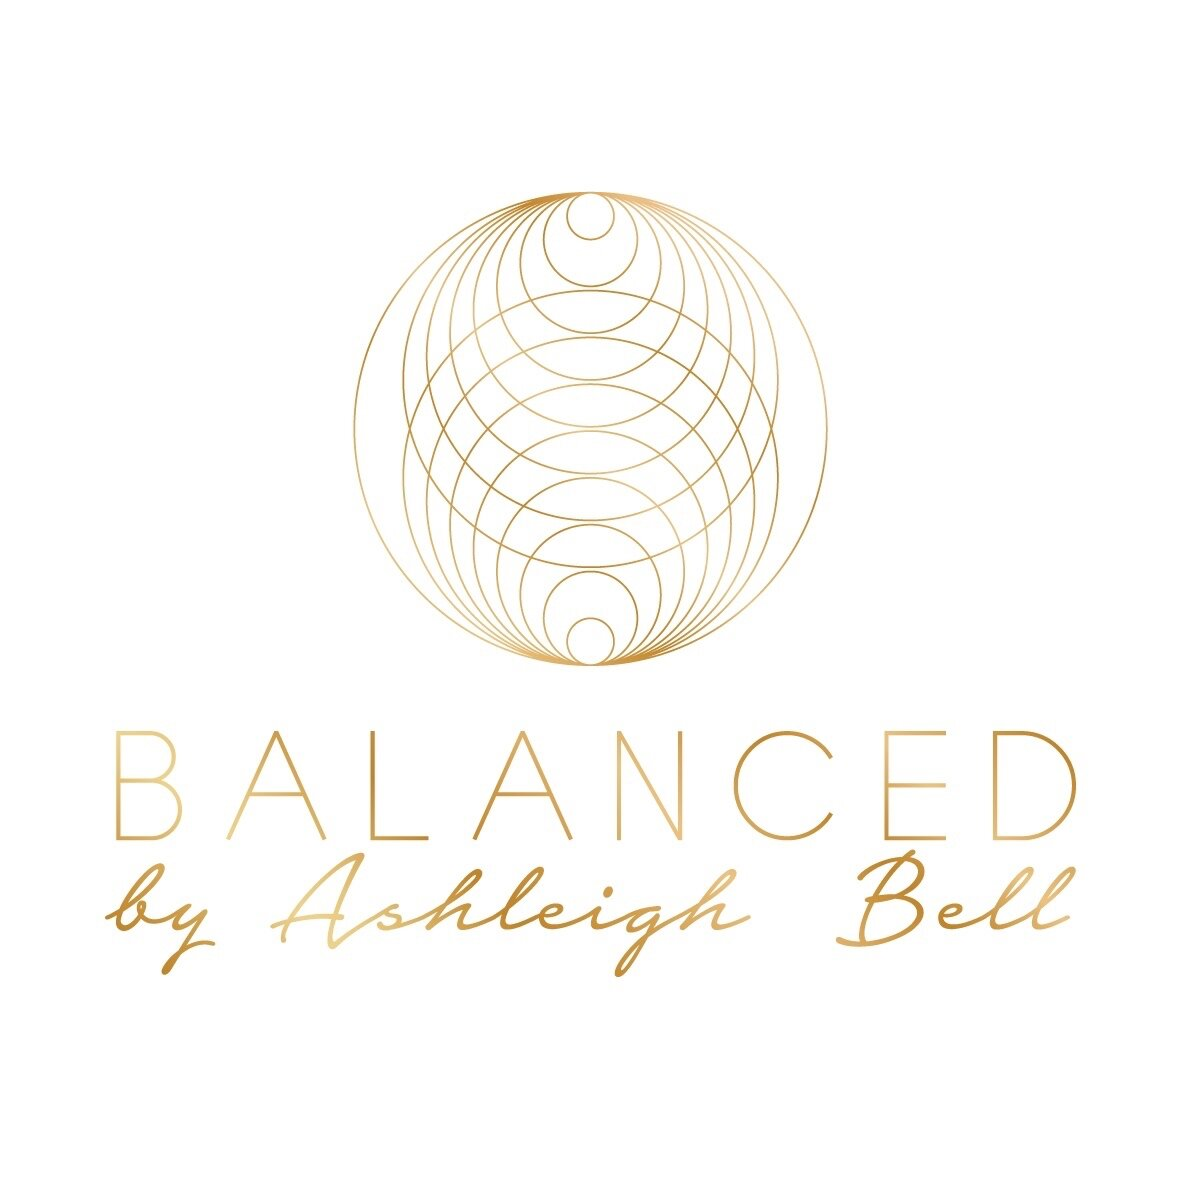 Balanced by Ashleigh Bell